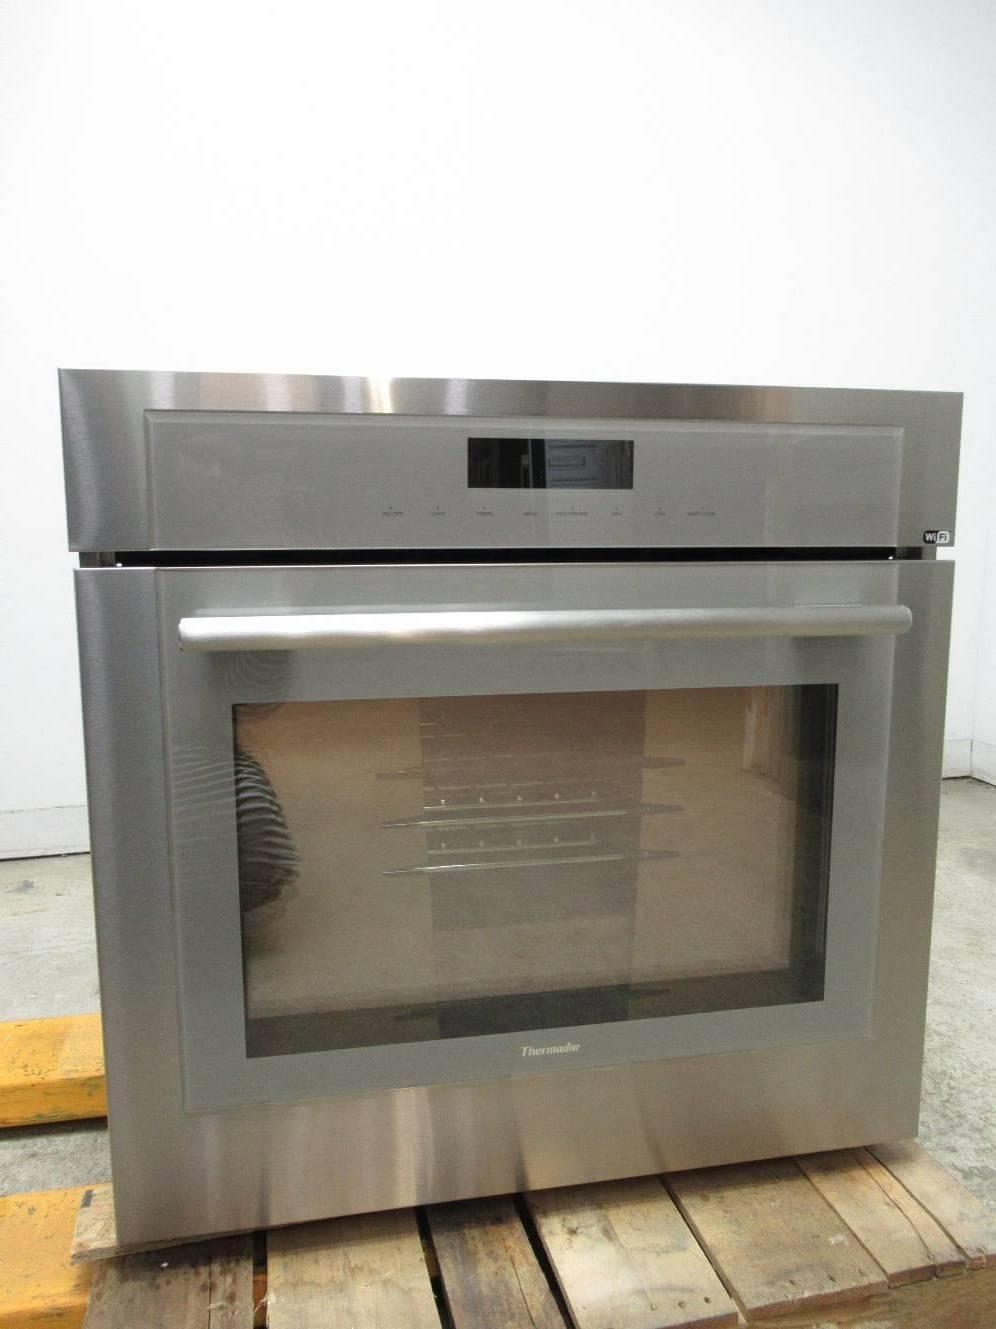 "Thermador Masterpiece Series 30"" SoftClose 4.5 SS Single Built-In Oven ME301WS - ALSurplus AL"